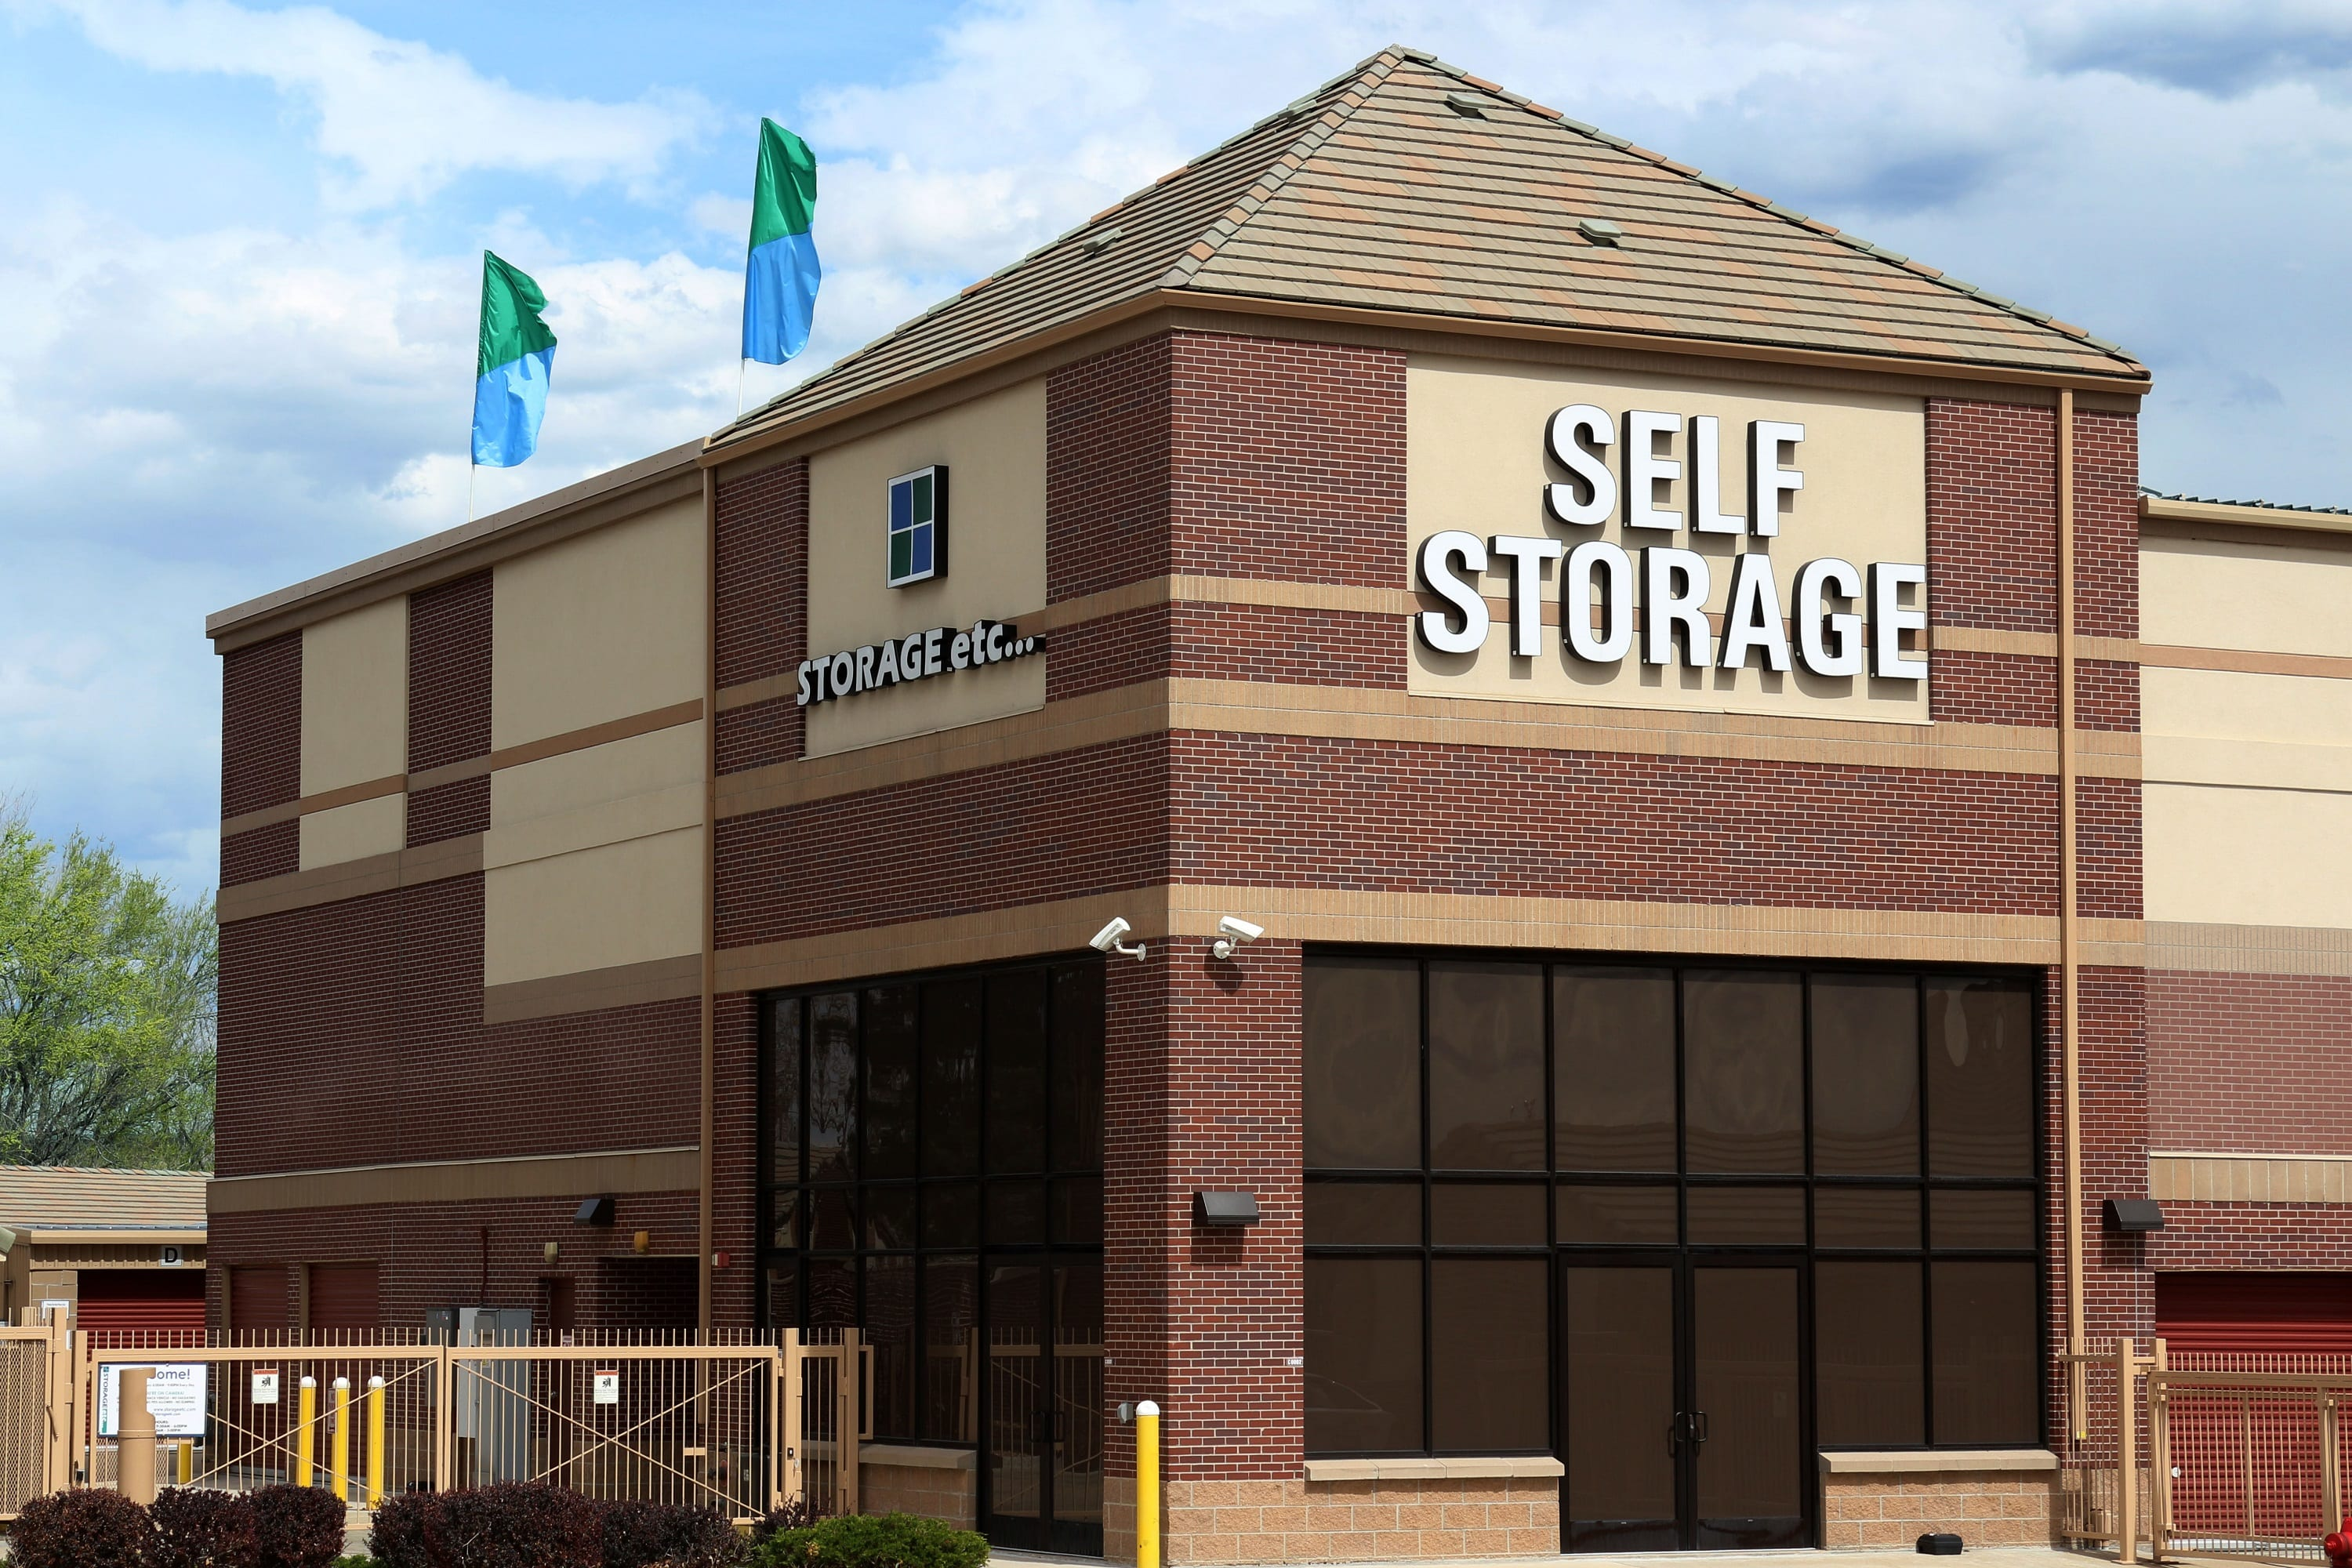 Self storage in Westminster CO